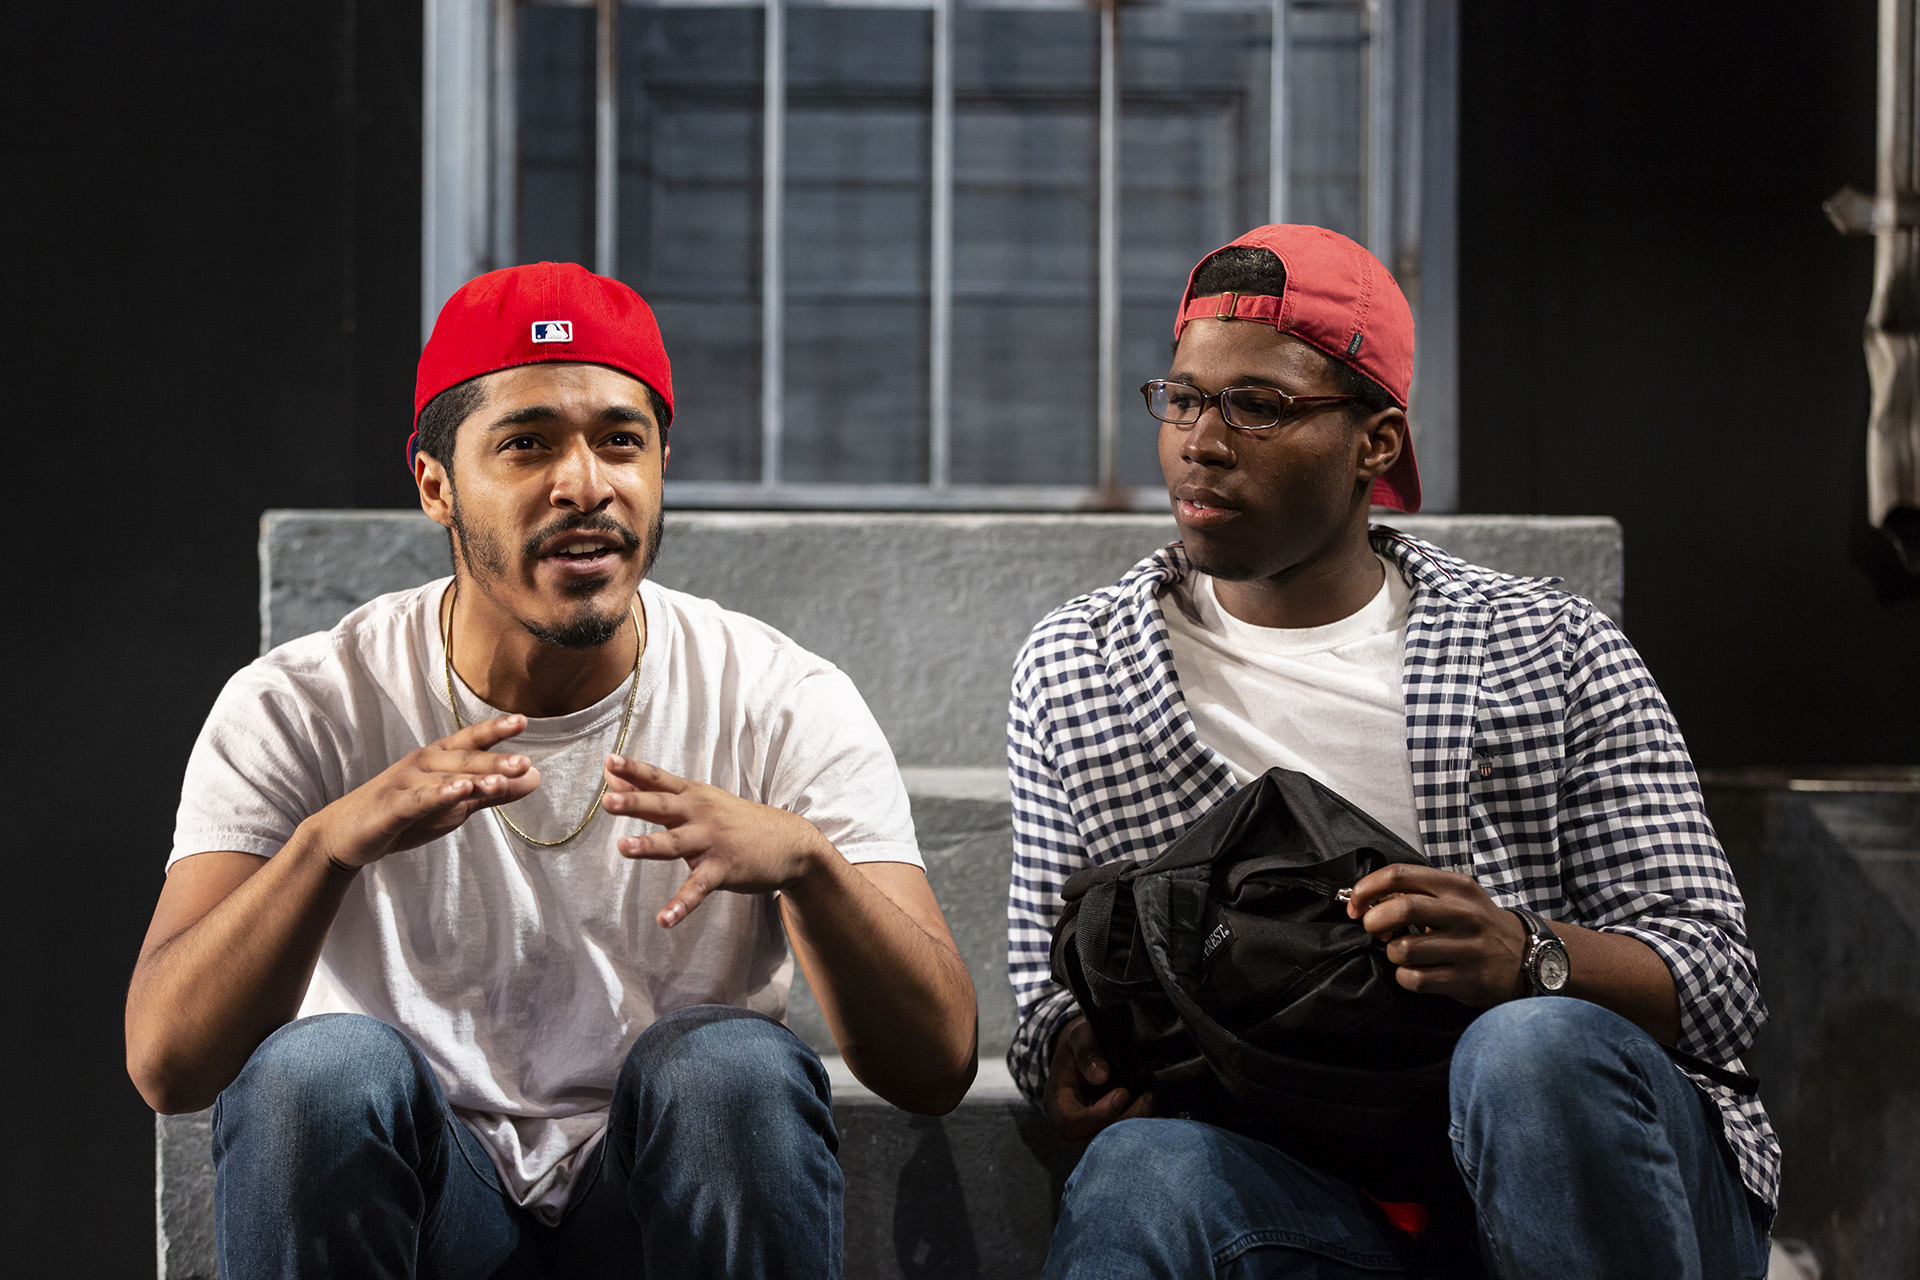 Robert Hart ('20) and Jakeem Powell ('19)  in MARTY AND THE HANDS THAT COULD by Josh Wilder ('18), directed by Lucie Dawkins ('18), Yale School of Drama, 2018. Photo by T. Charles Erickson.